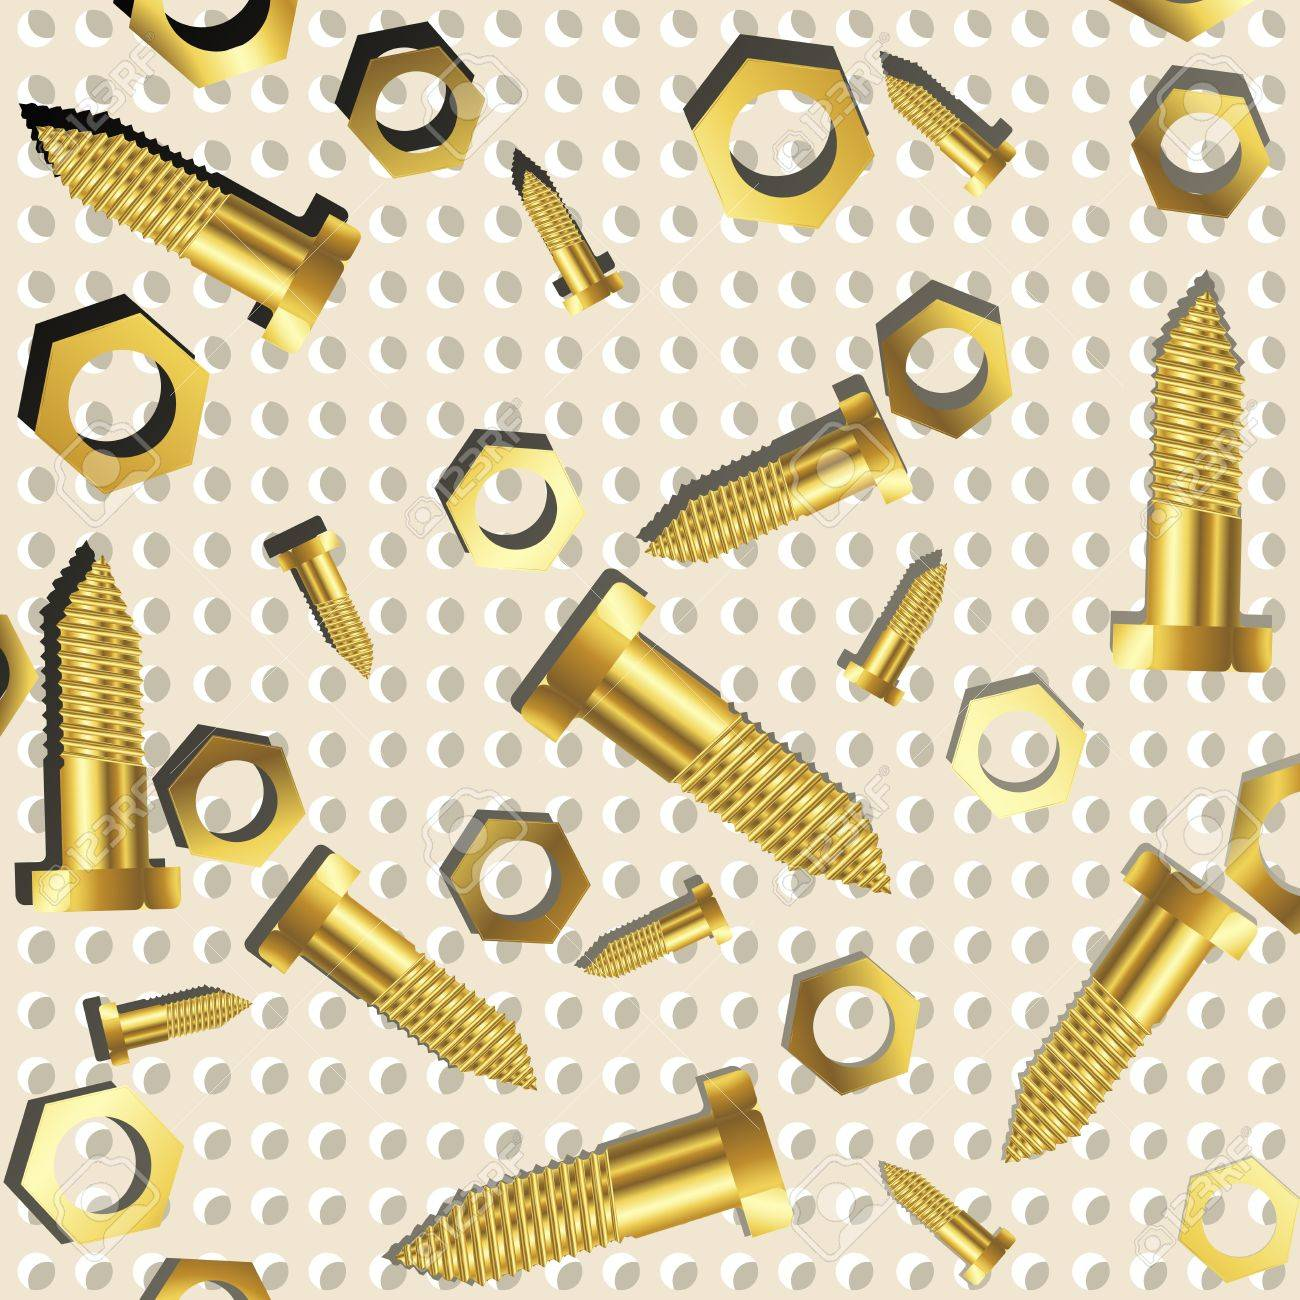 screws and nuts over metallic texture, abstract art illustration Stock Photo - 7325603